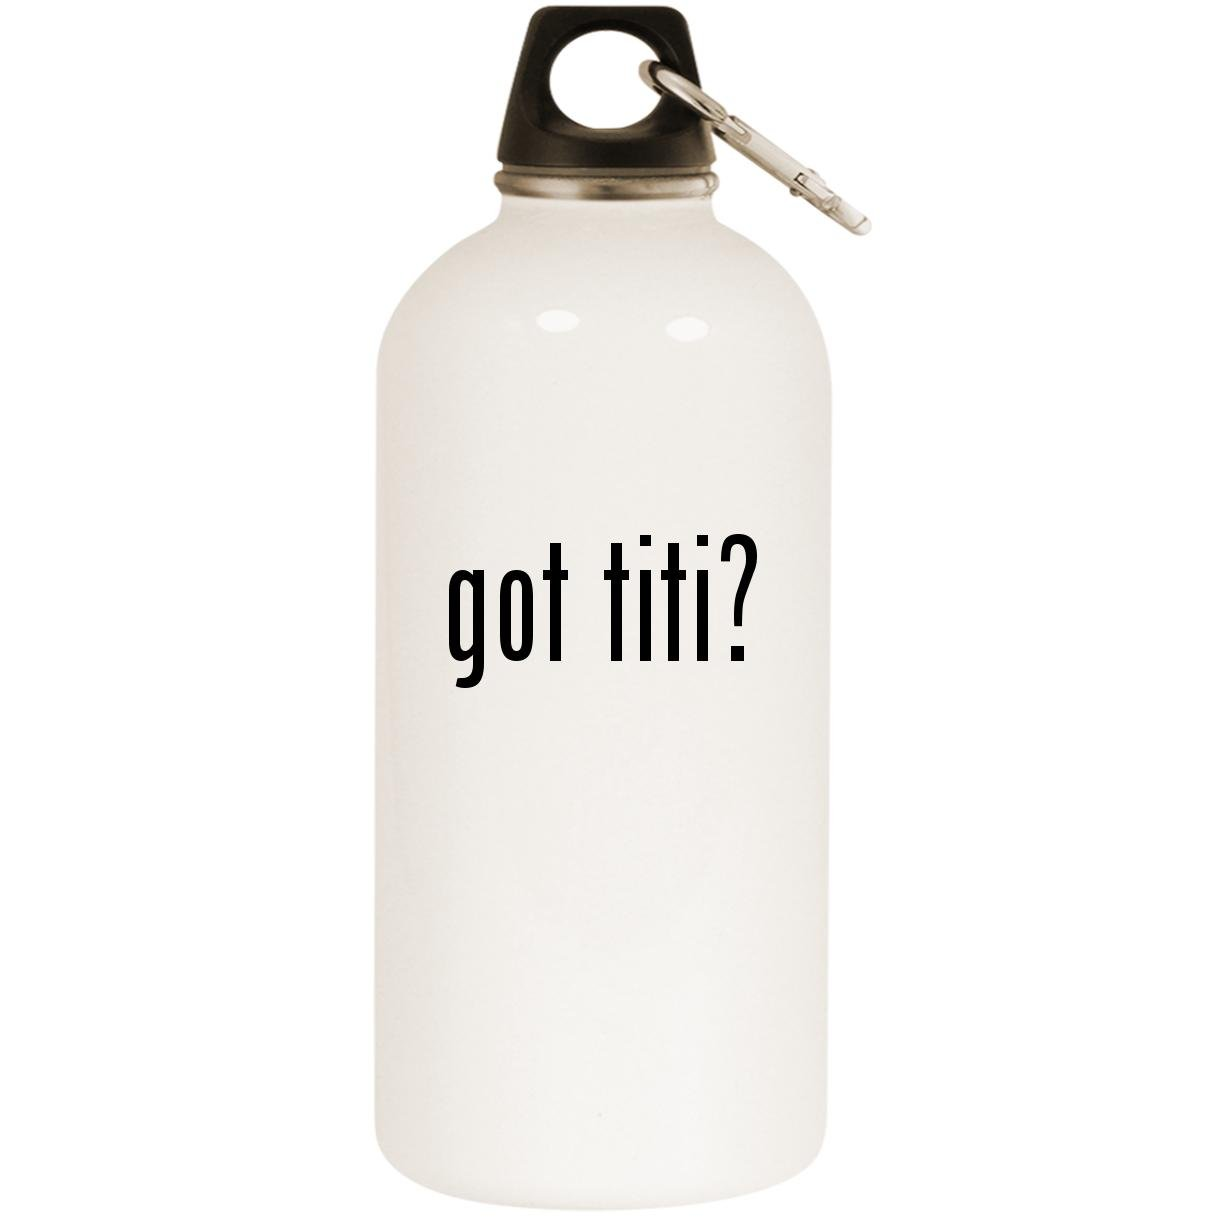 got titi? - White 20oz Stainless Steel Water Bottle with Carabiner